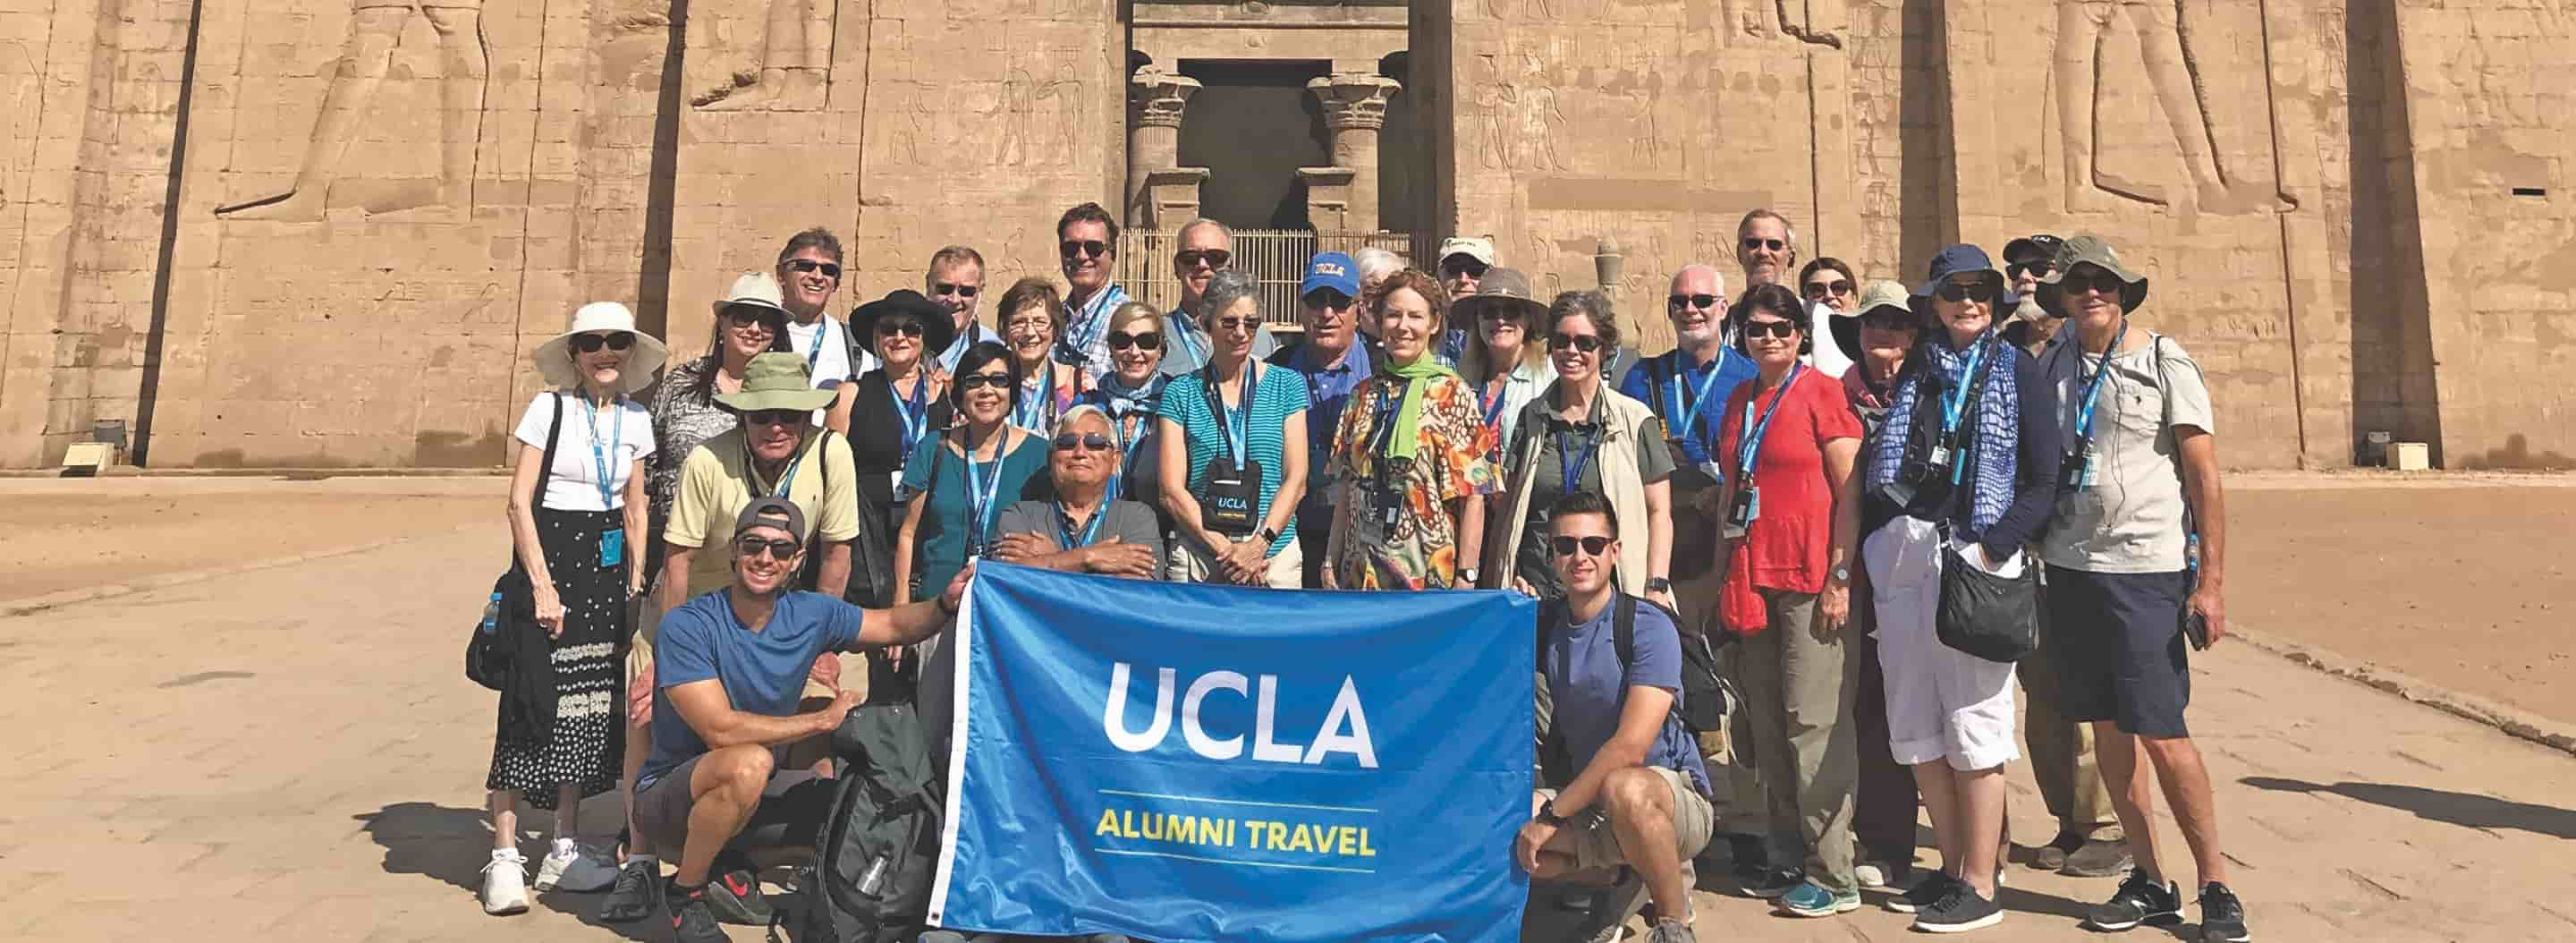 UCLA travel group picture.